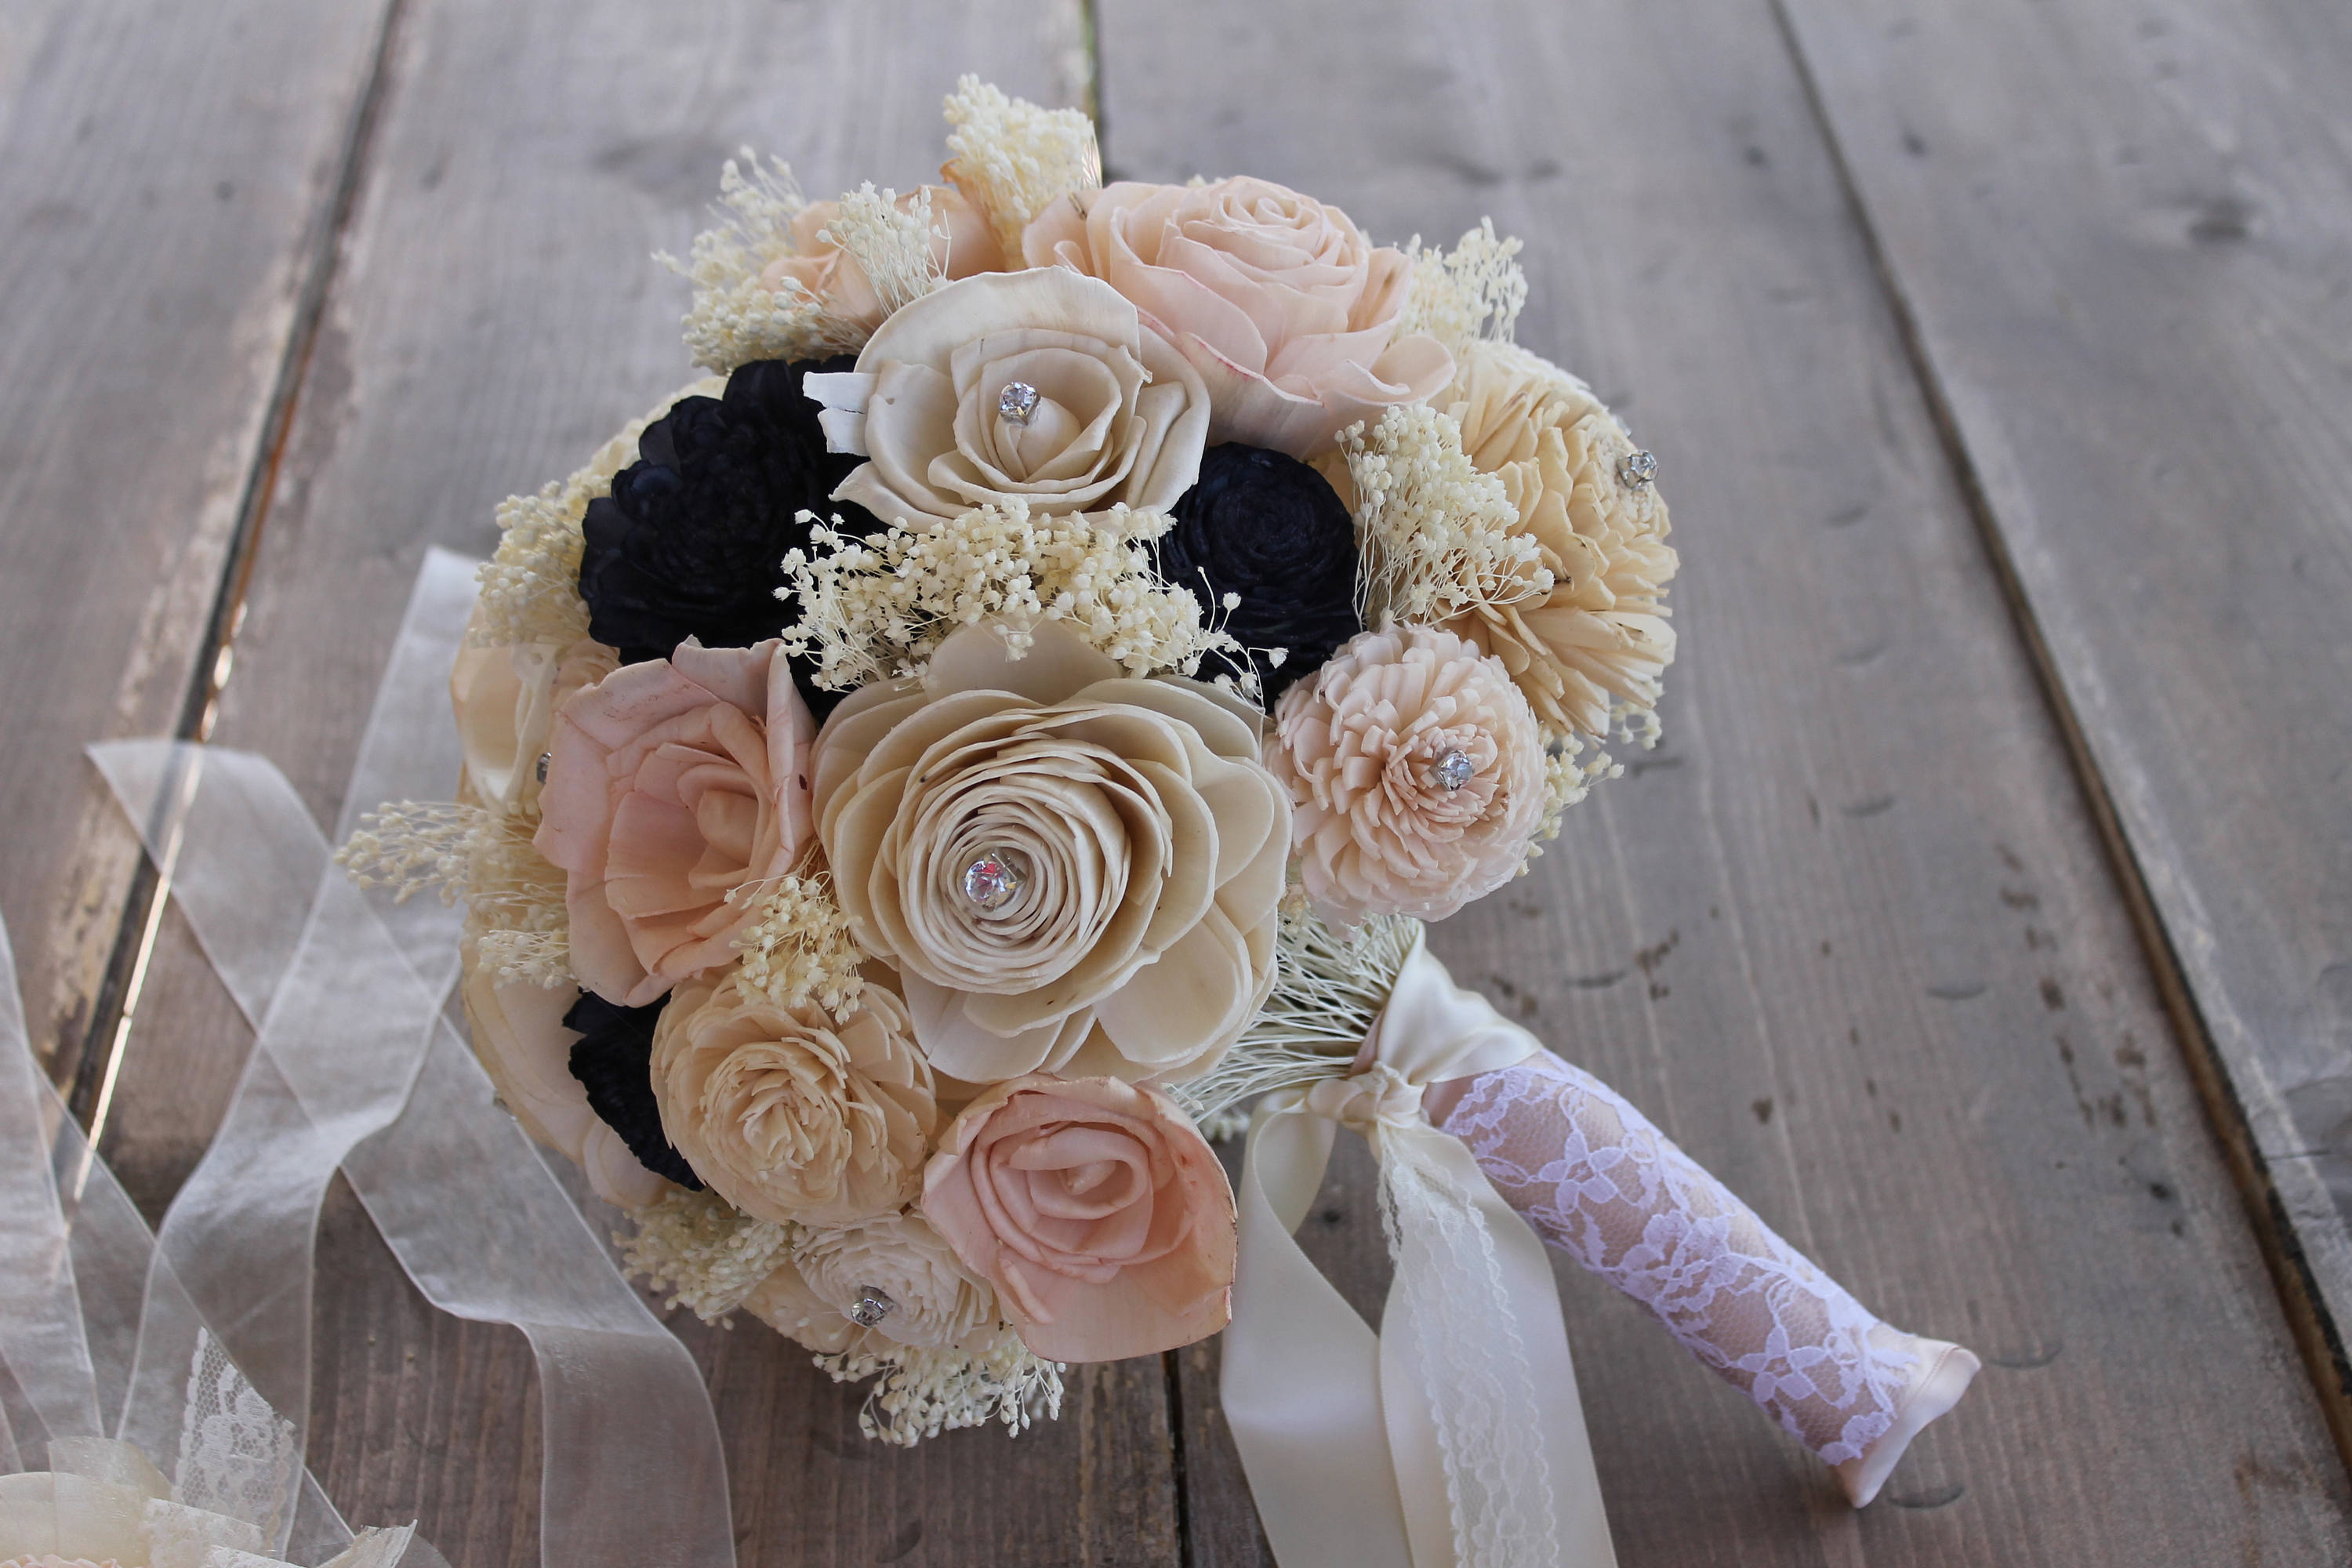 Fake Wedding Bouquets That Look Real And Last Forever